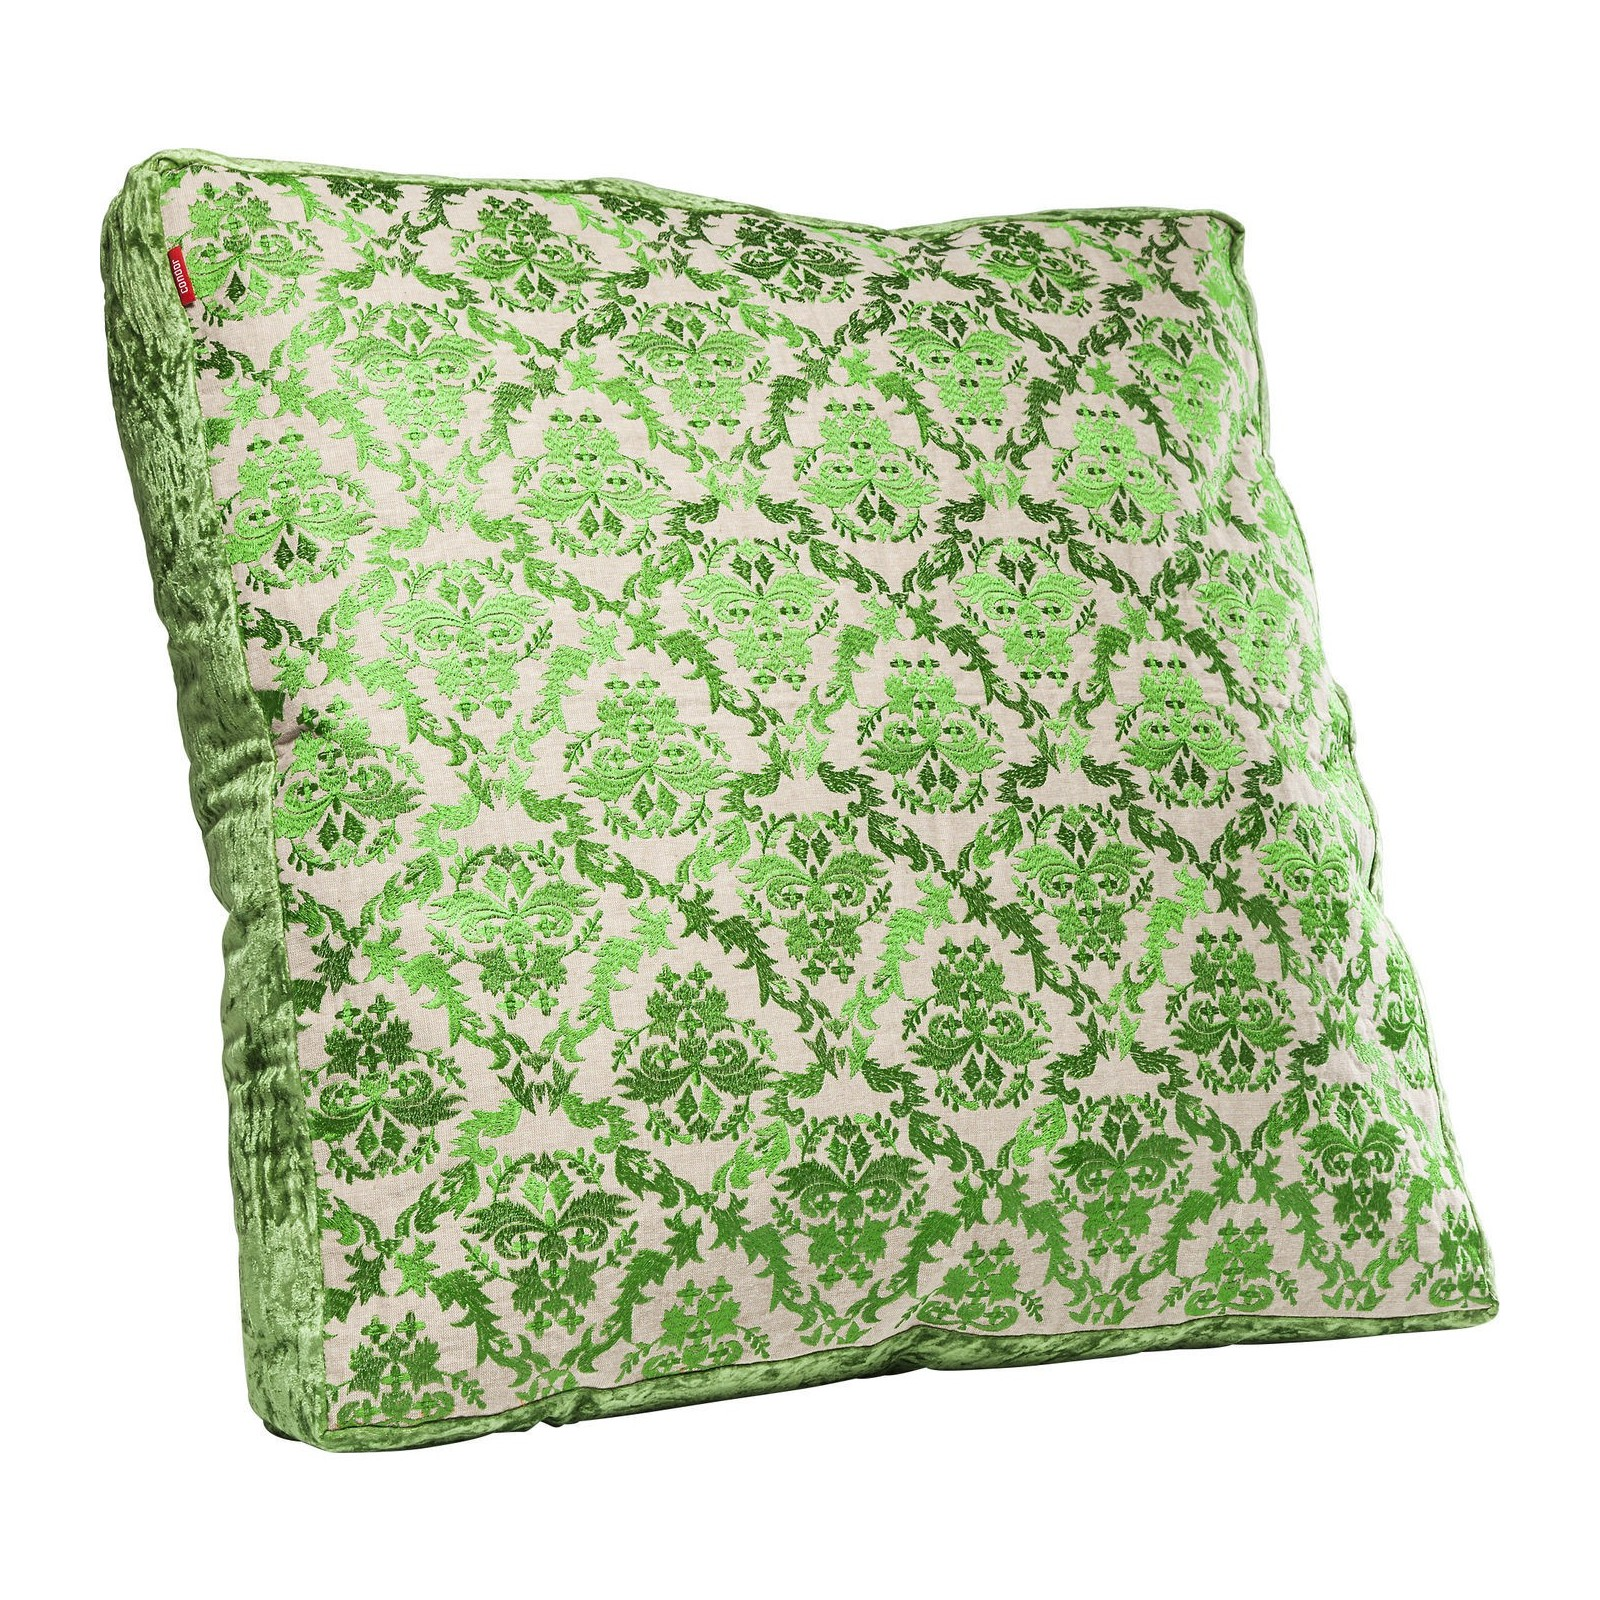 coussin de sol green ornaments 70x70cm kare design. Black Bedroom Furniture Sets. Home Design Ideas